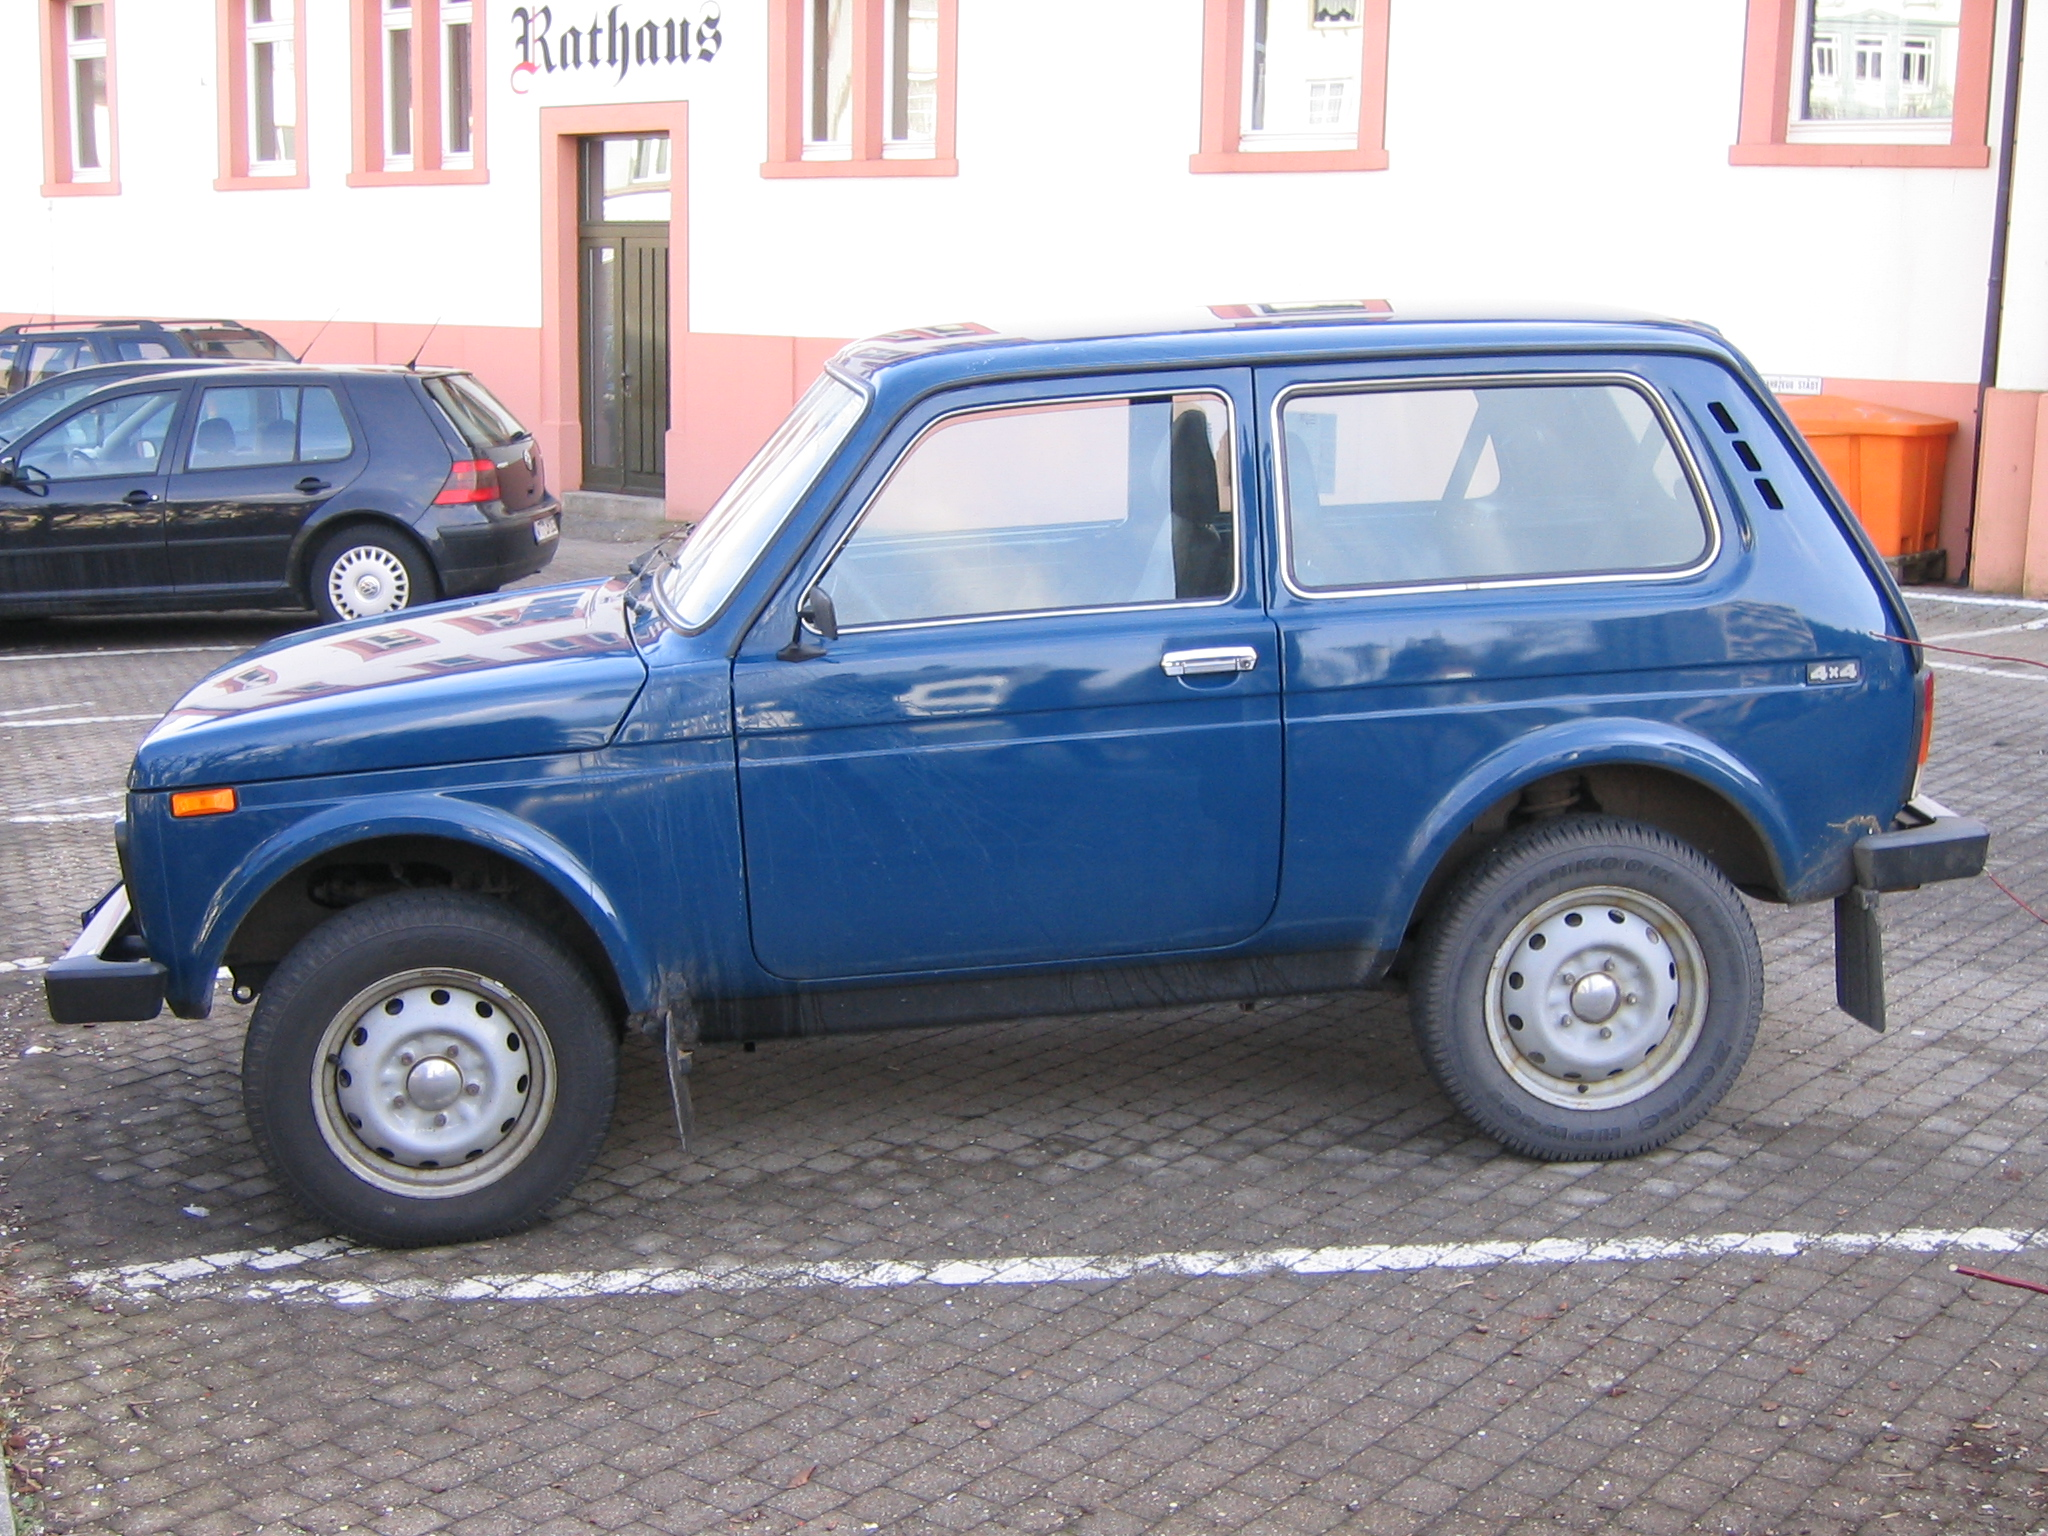 file lada niva 4x4 wikimedia commons. Black Bedroom Furniture Sets. Home Design Ideas